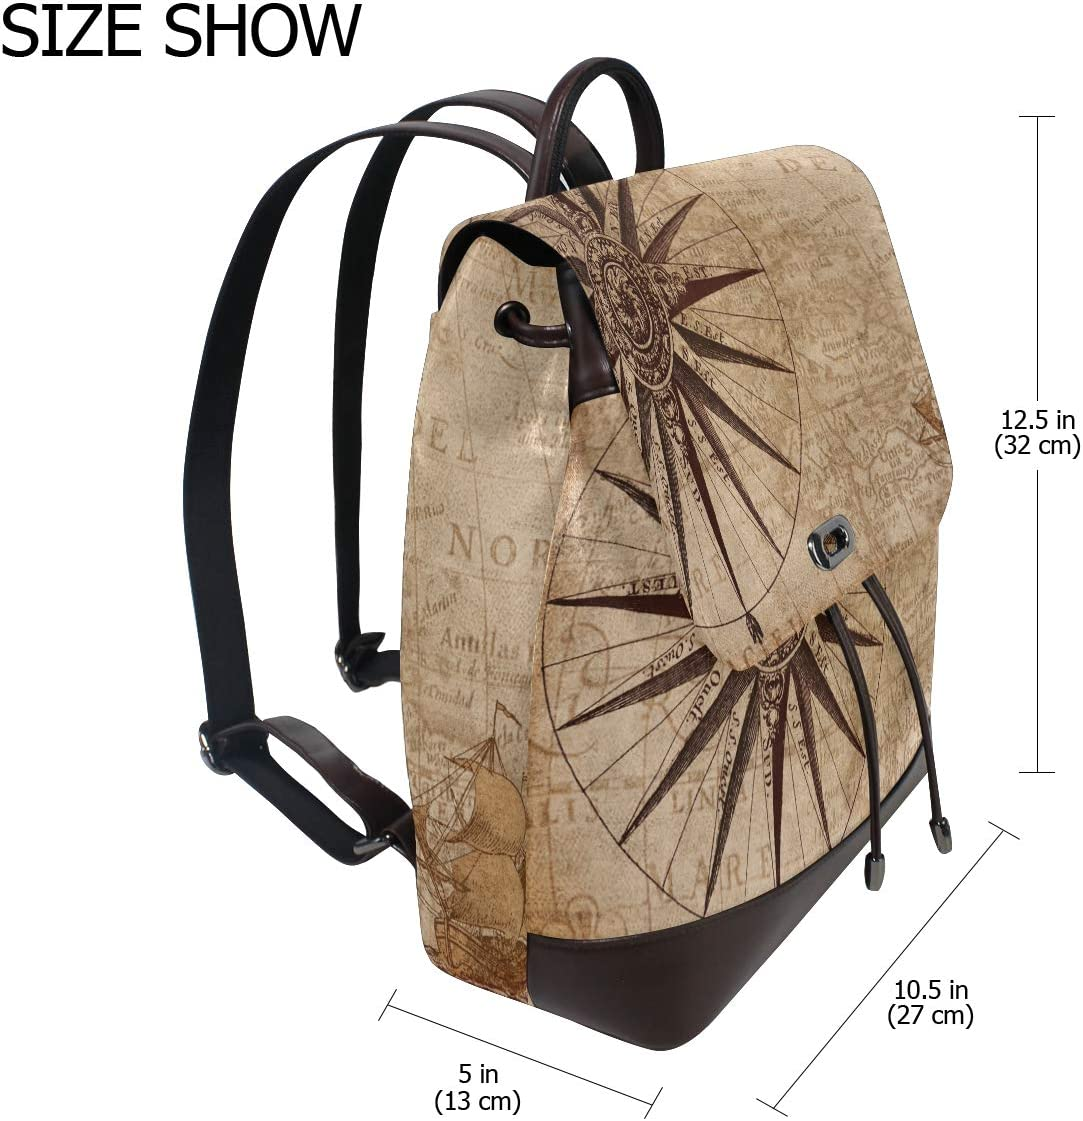 Shopping Bag Backpack Storage Bag For Men Women Girls Boys Personalized Pattern Compass School Bag Travel Bag